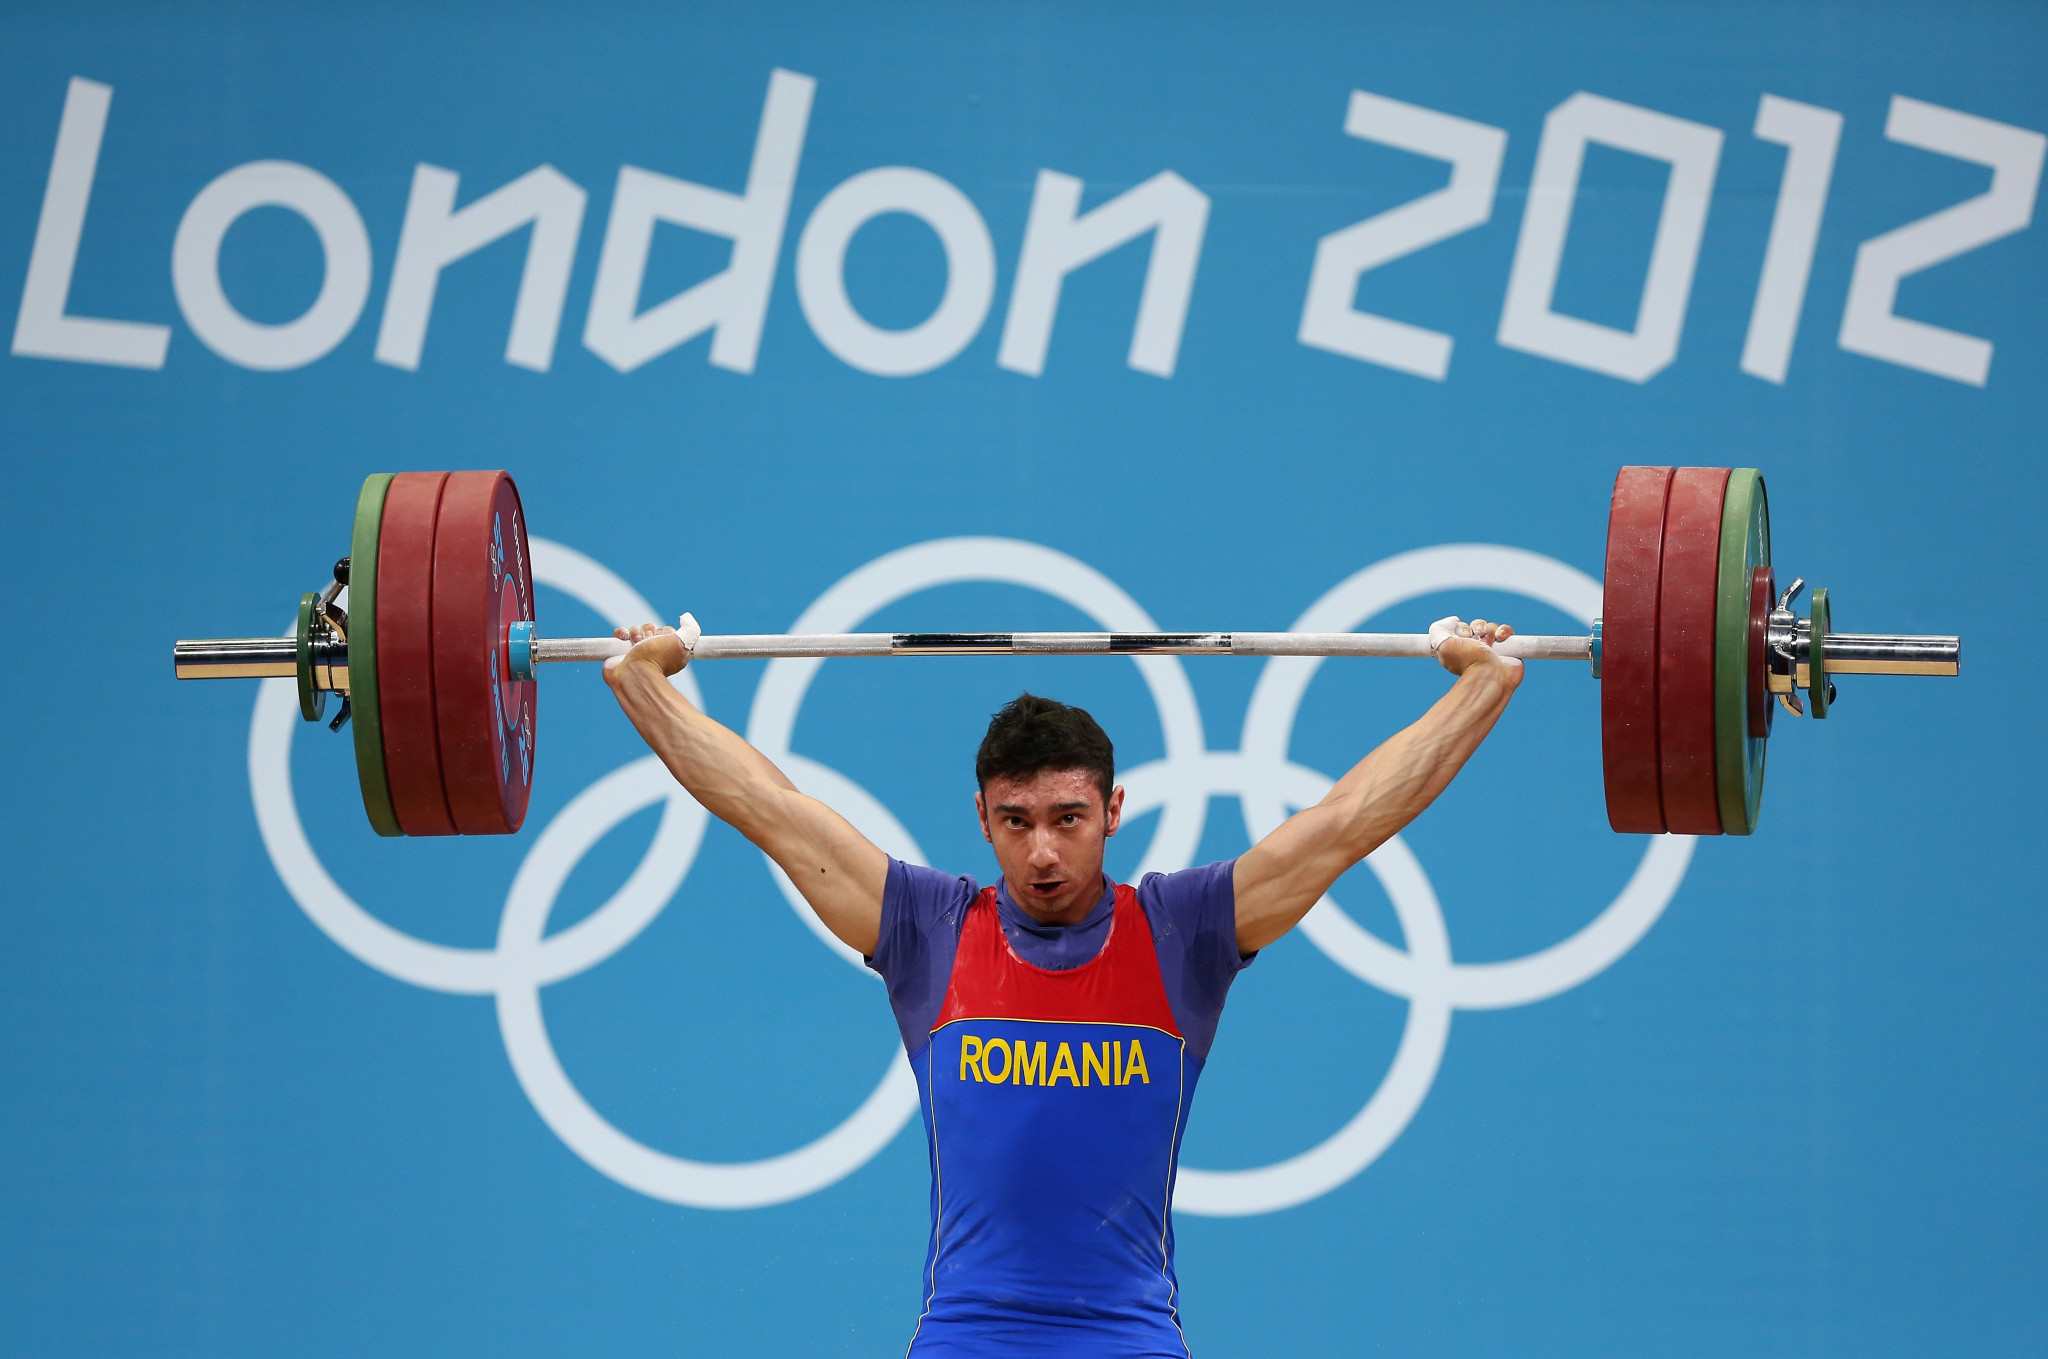 Romania's entire London 2012 team tested positive for banned substances ©Getty Images